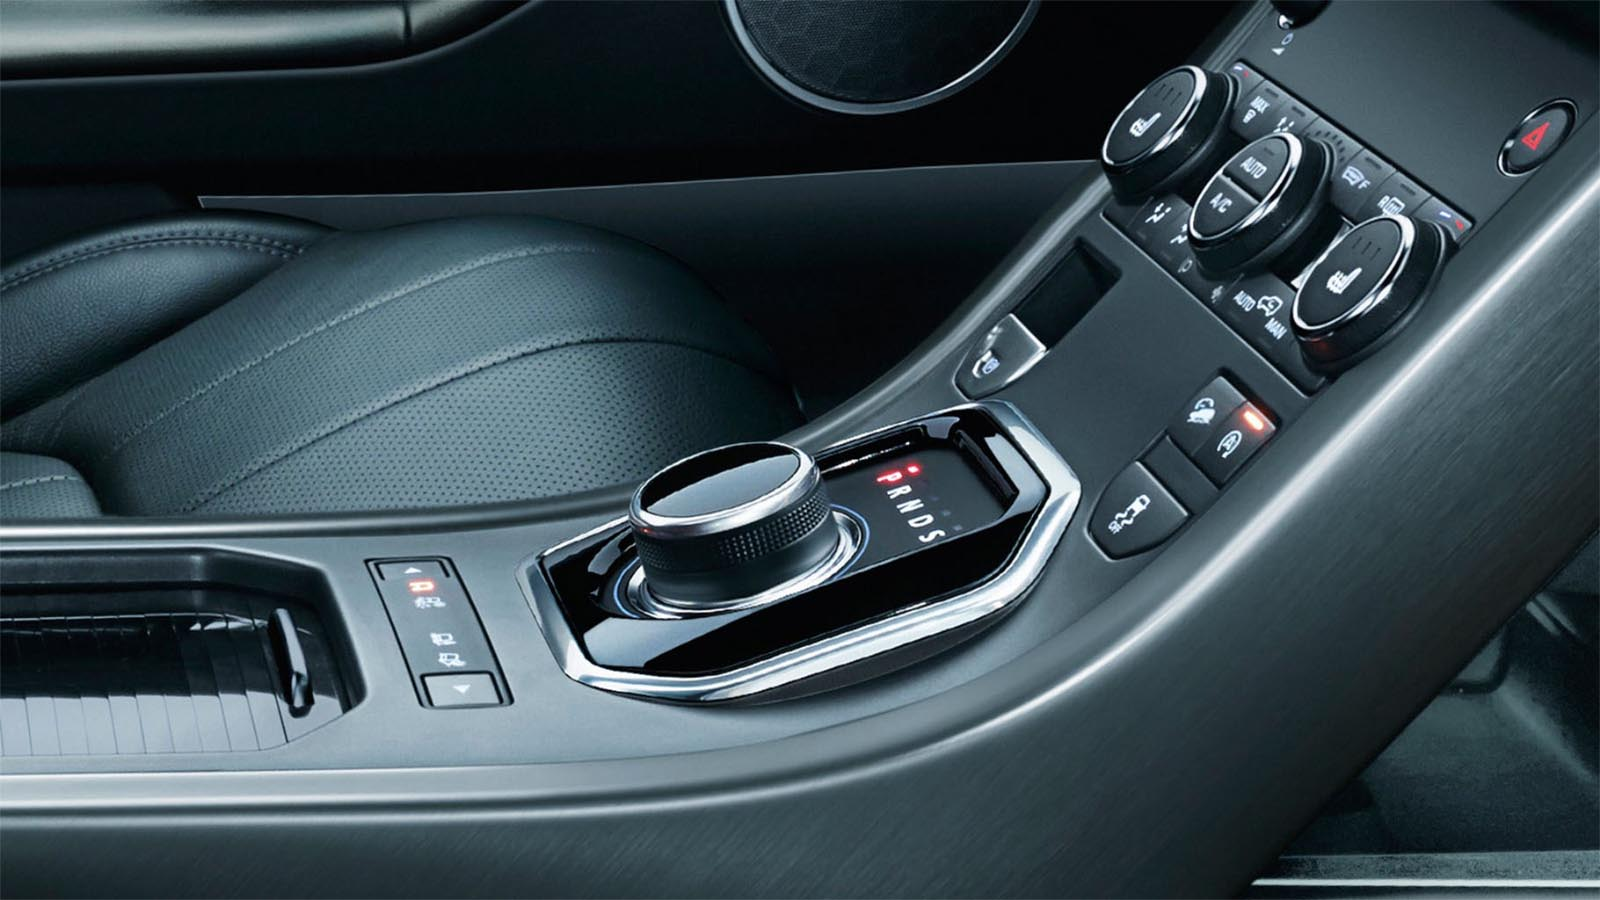 The automatic 9-speed transmission of the Range Rover Evoque. 19MY Shown.